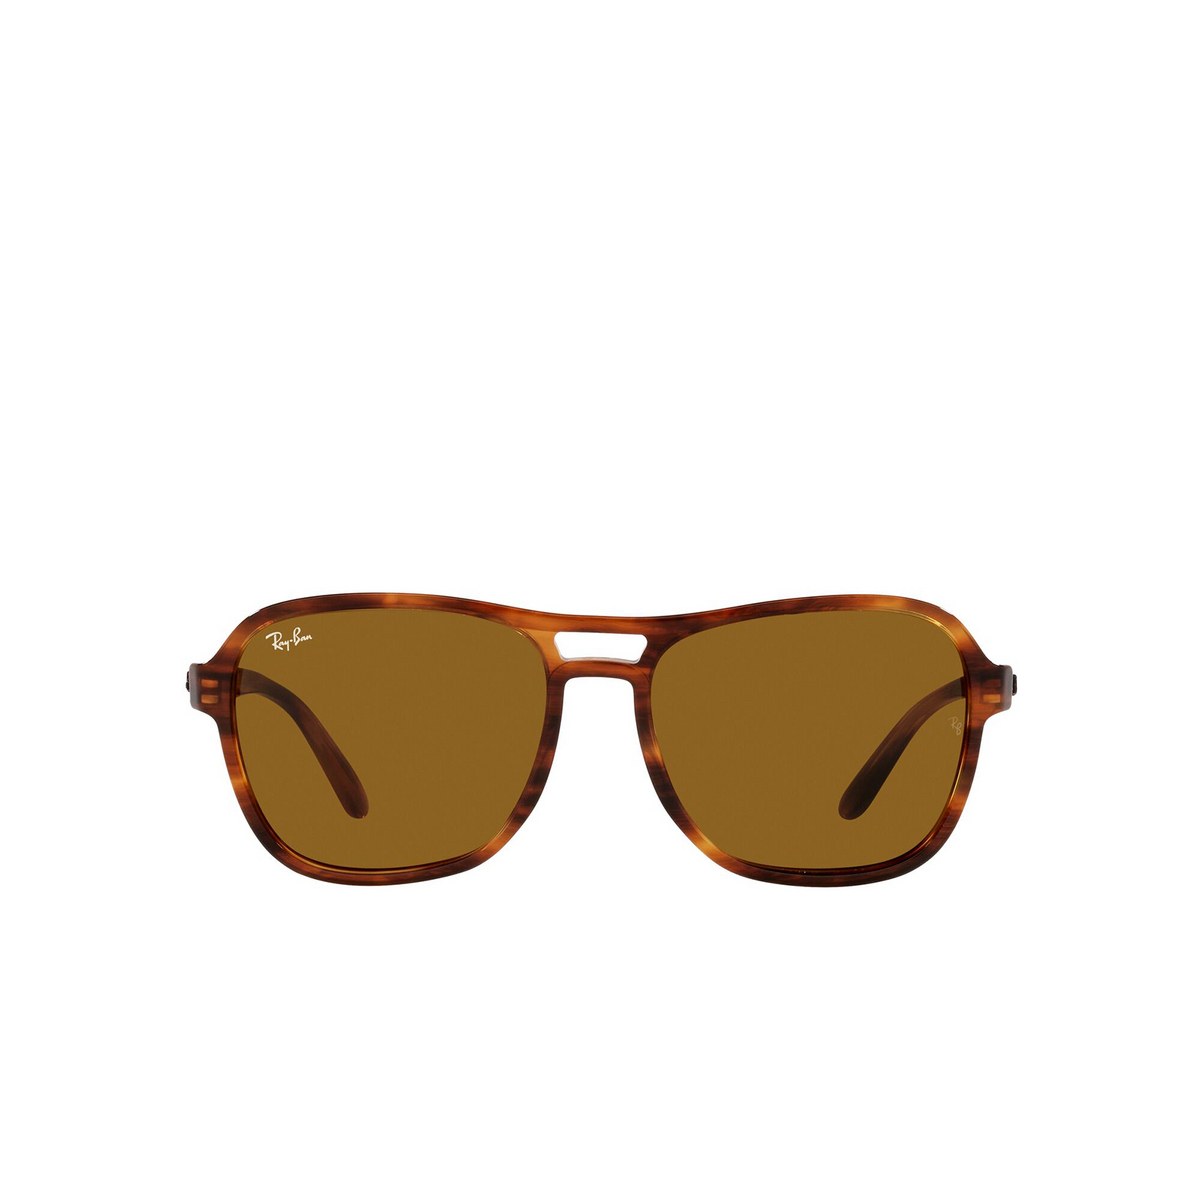 Ray-Ban® Square Sunglasses: State Side RB4356 color Striped Havana 954/33 - front view.